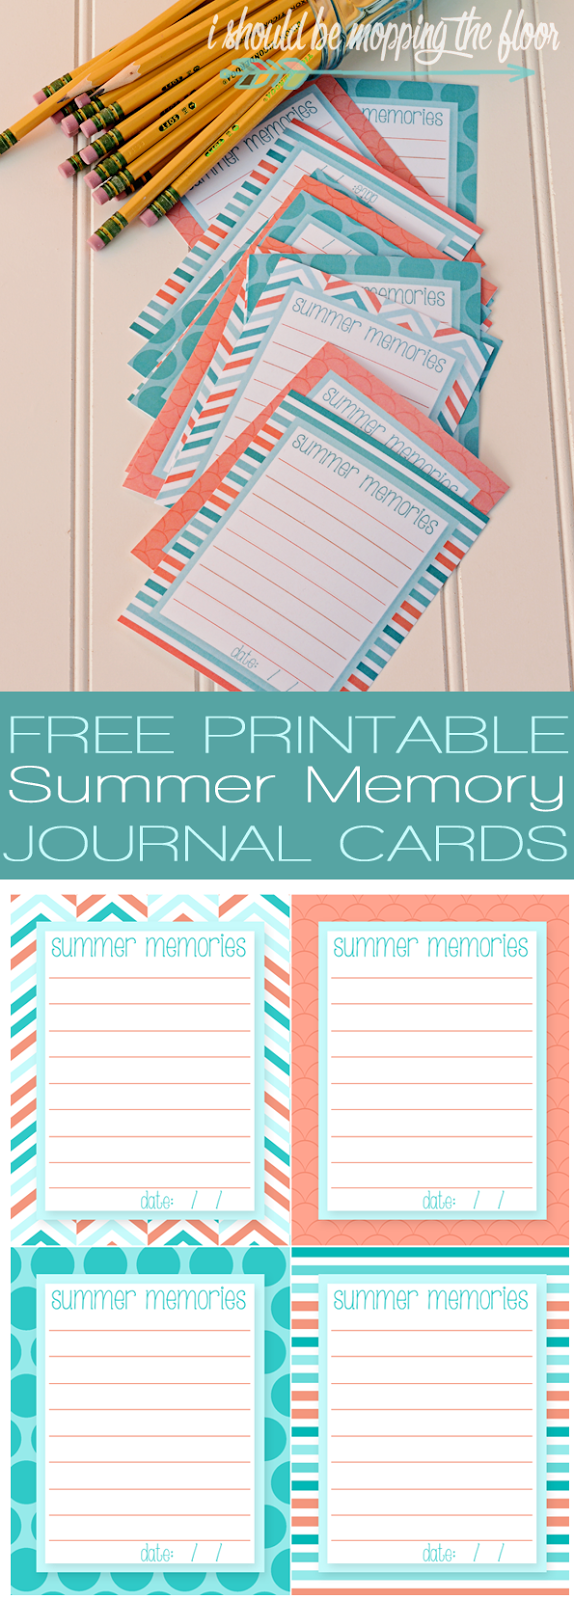 photo about Free Printable Journal Cards known as Cost-free Printable Summer time Memory Magazine Playing cards i ought to be